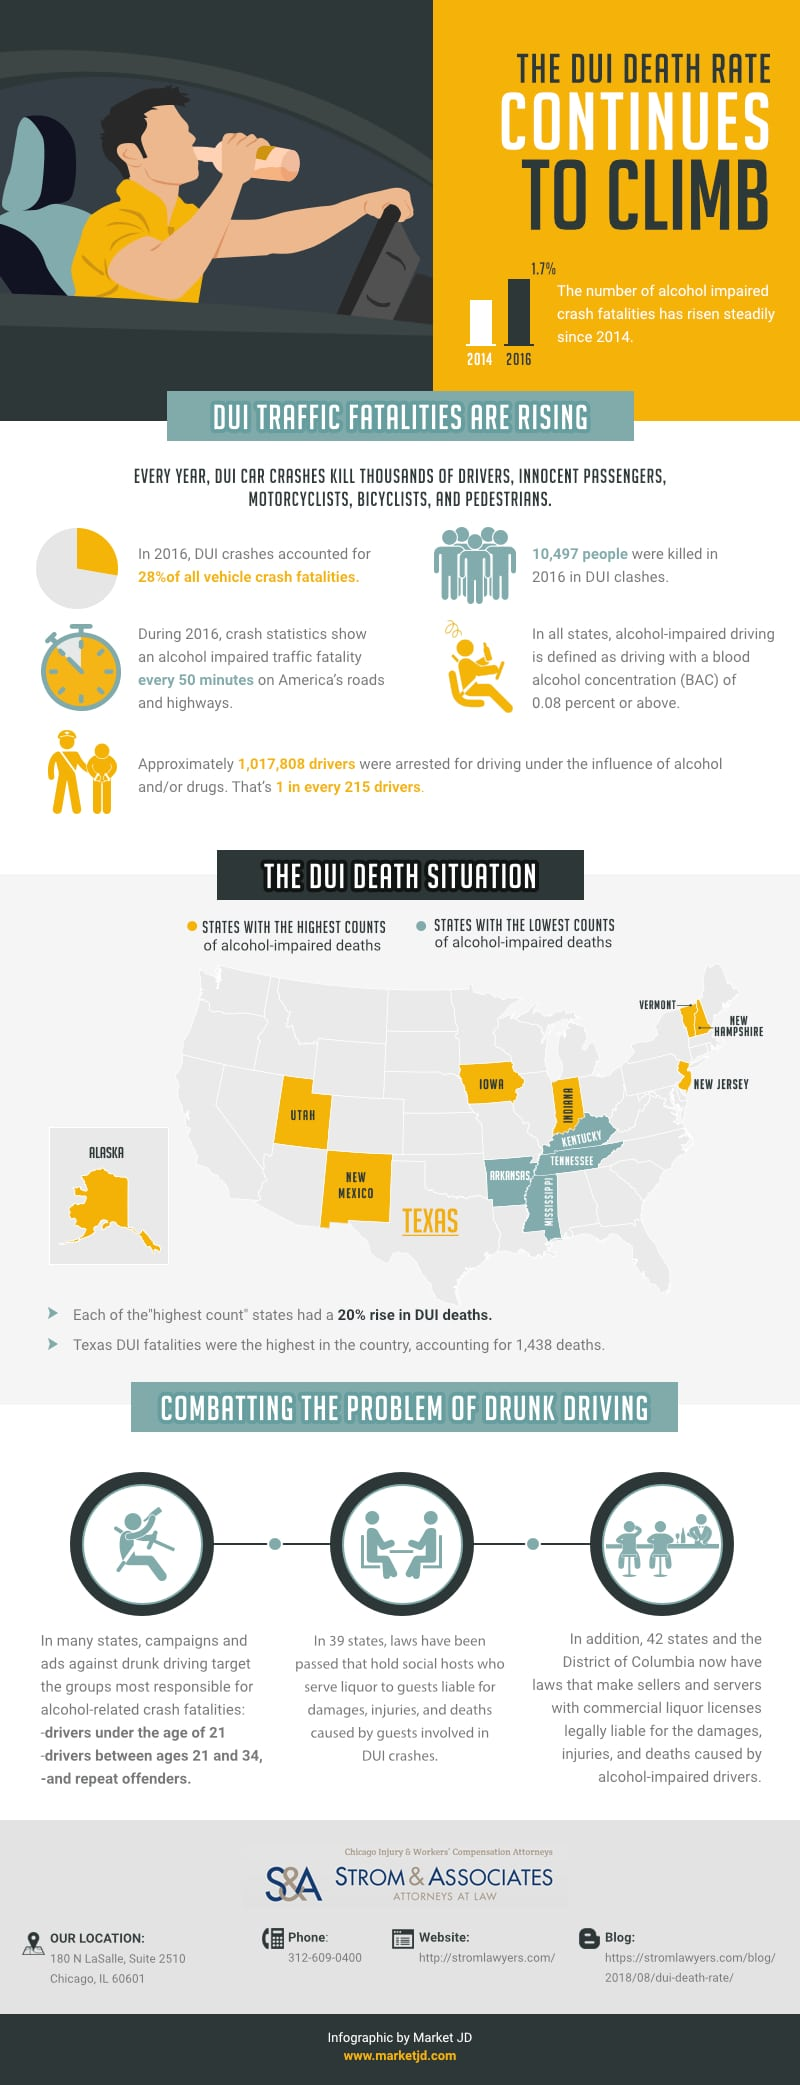 THE DUI DEATH RATE